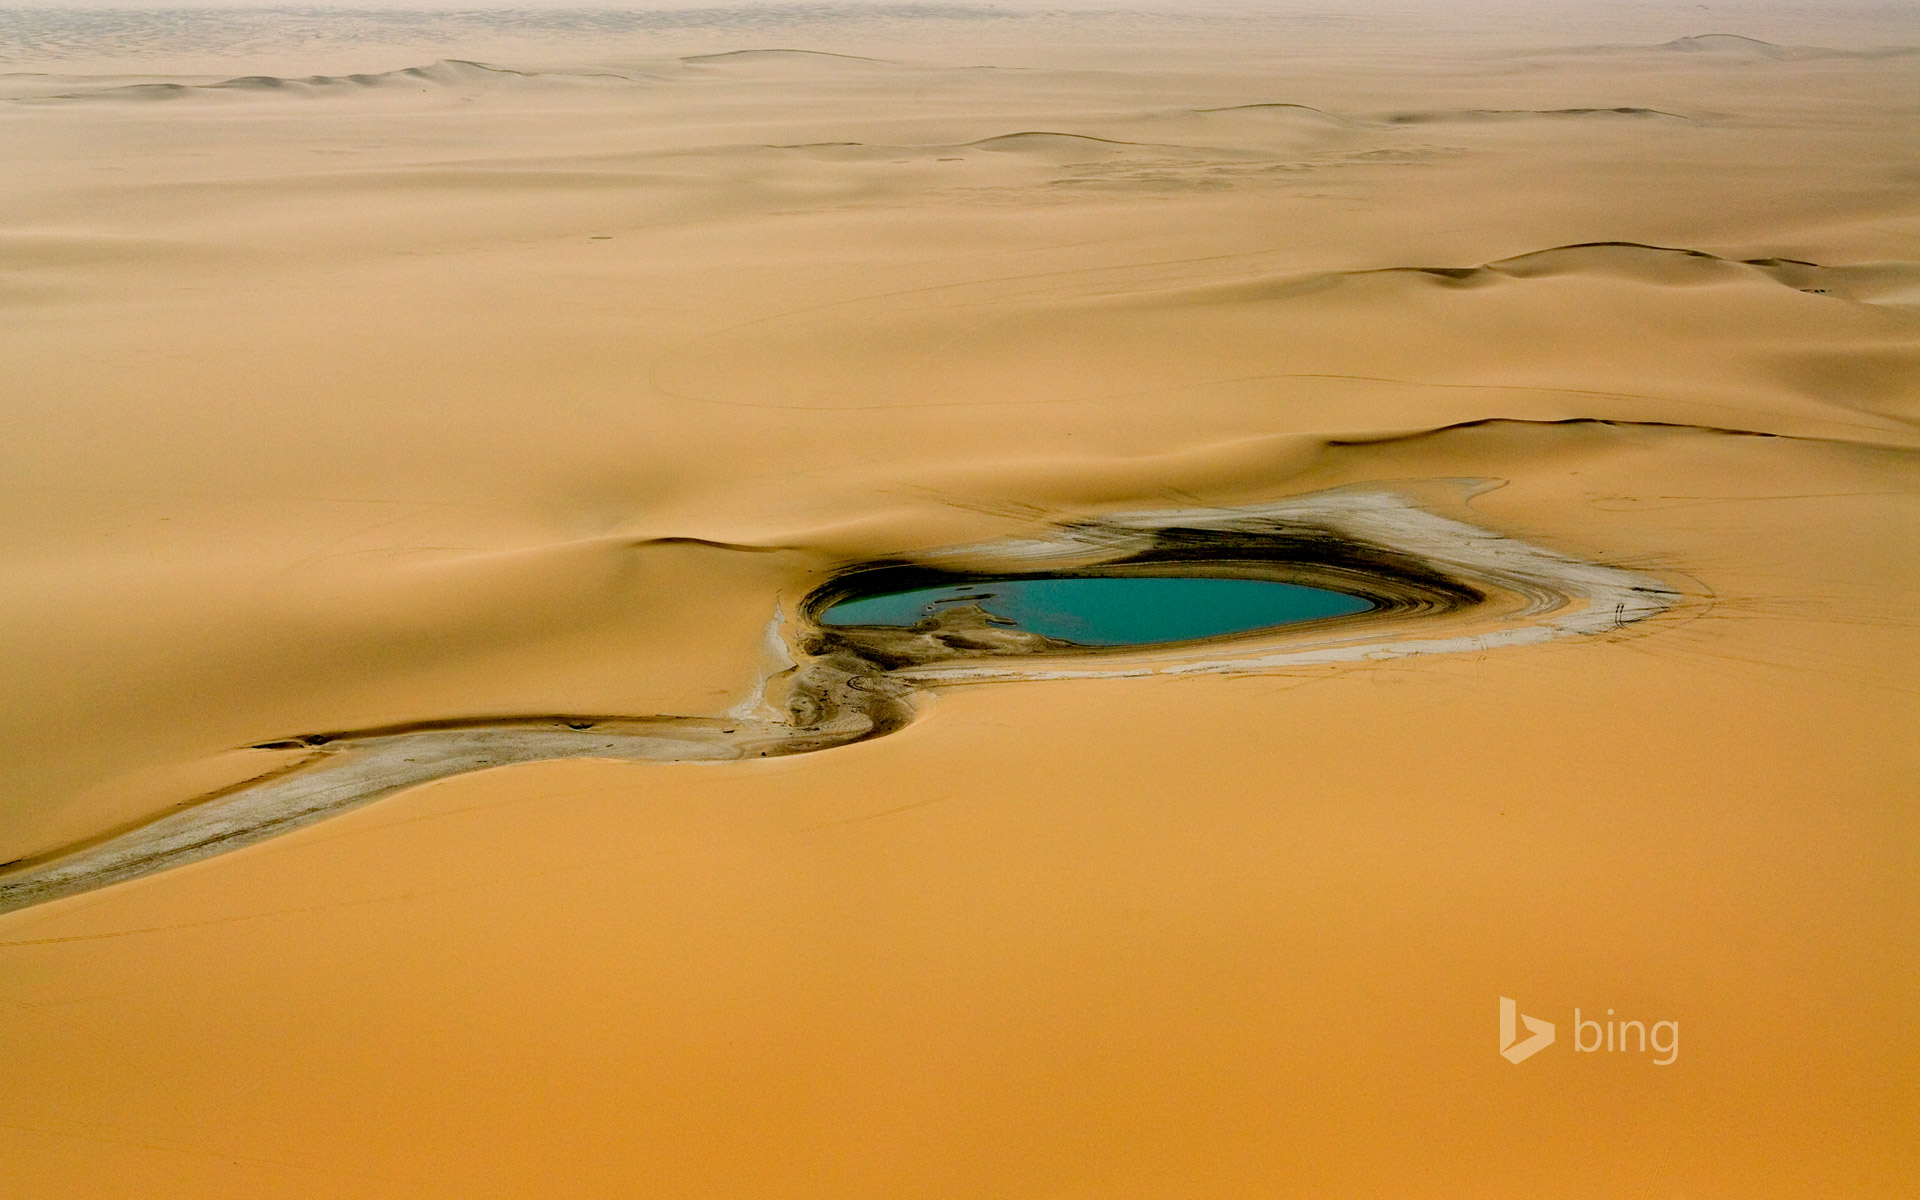 Accumulation of rainwater in the Sahara Desert, east of the Aïr Mountains, Niger